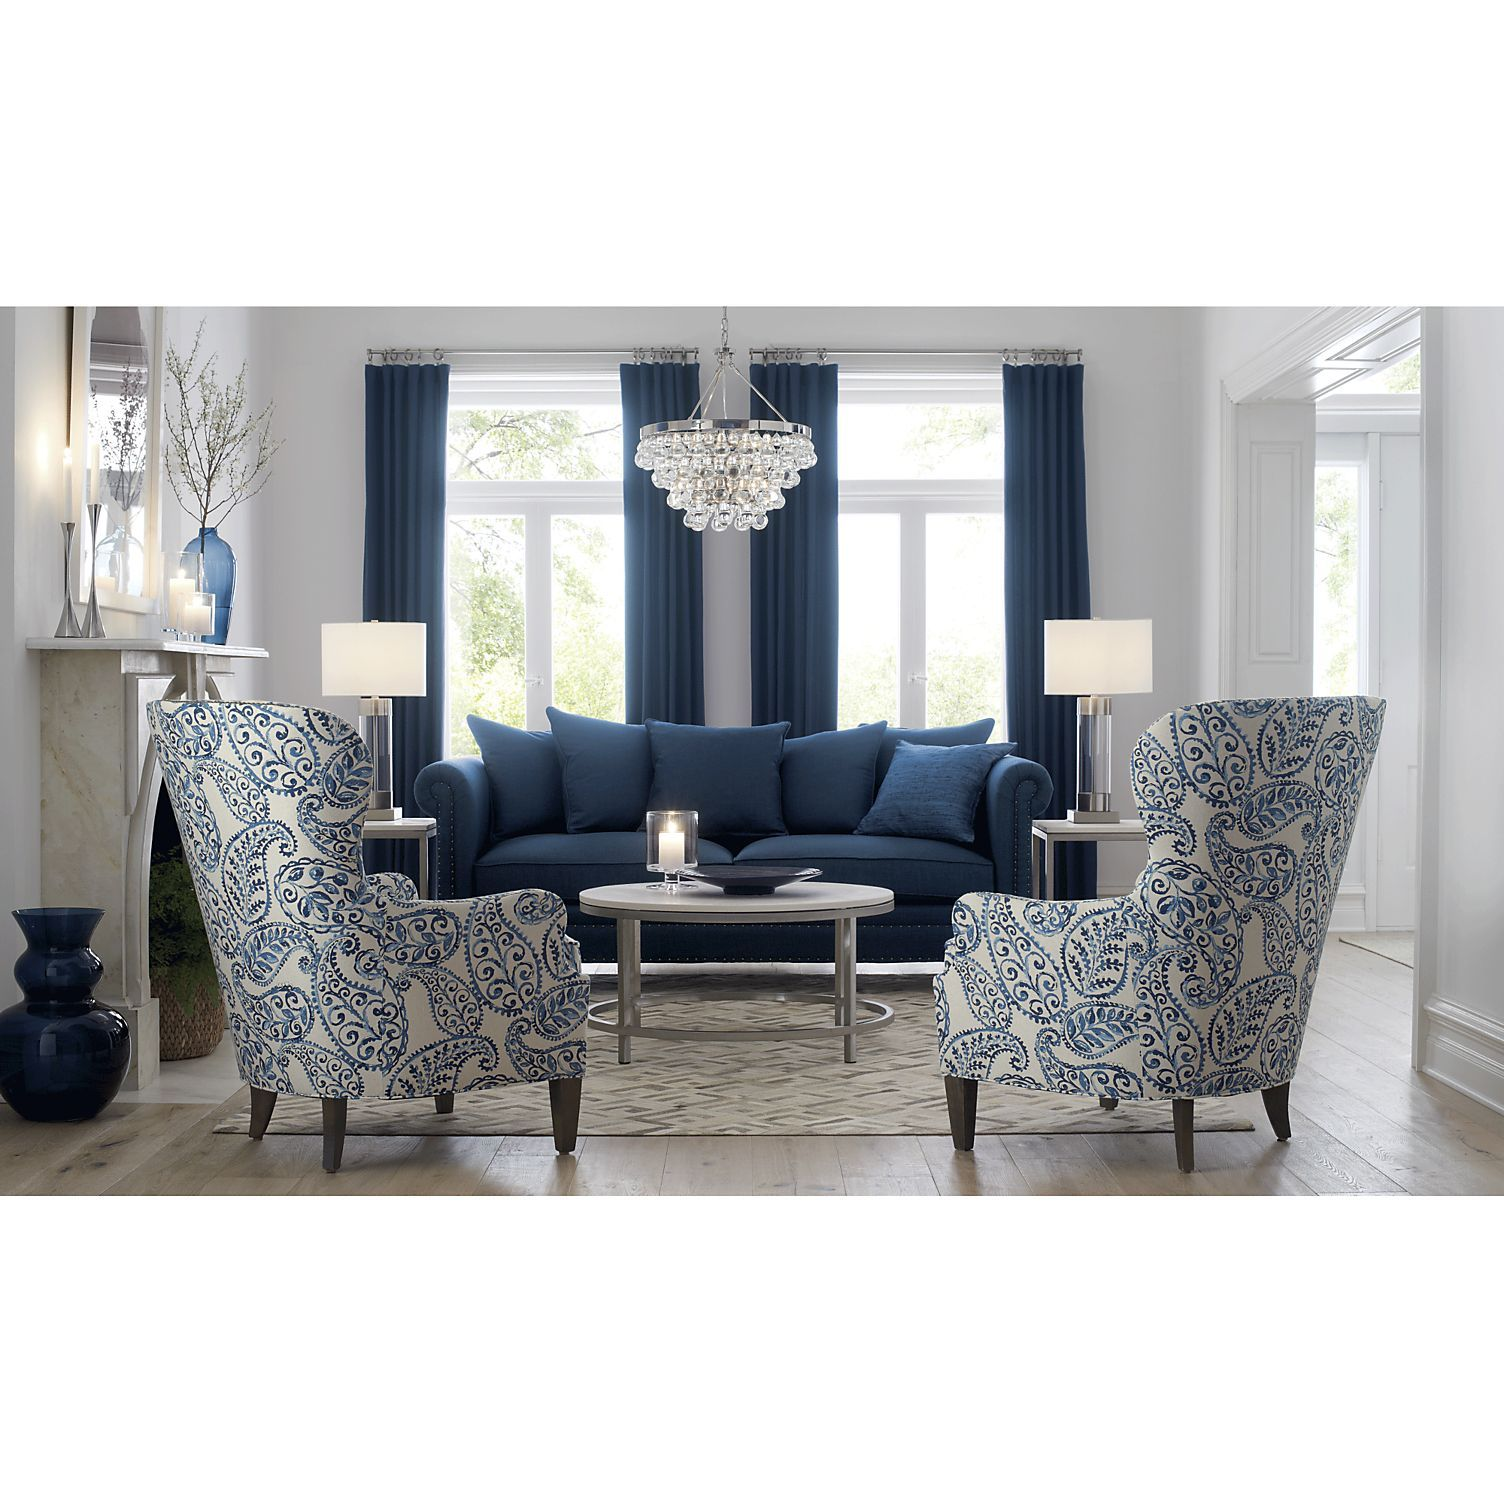 Shop Brielle Blue Wingback Armchair A Textured Linen Blend Gives The Pattern A Painterl Blue Sofas Living Room Blue Living Room Decor Blue Couch Living Room